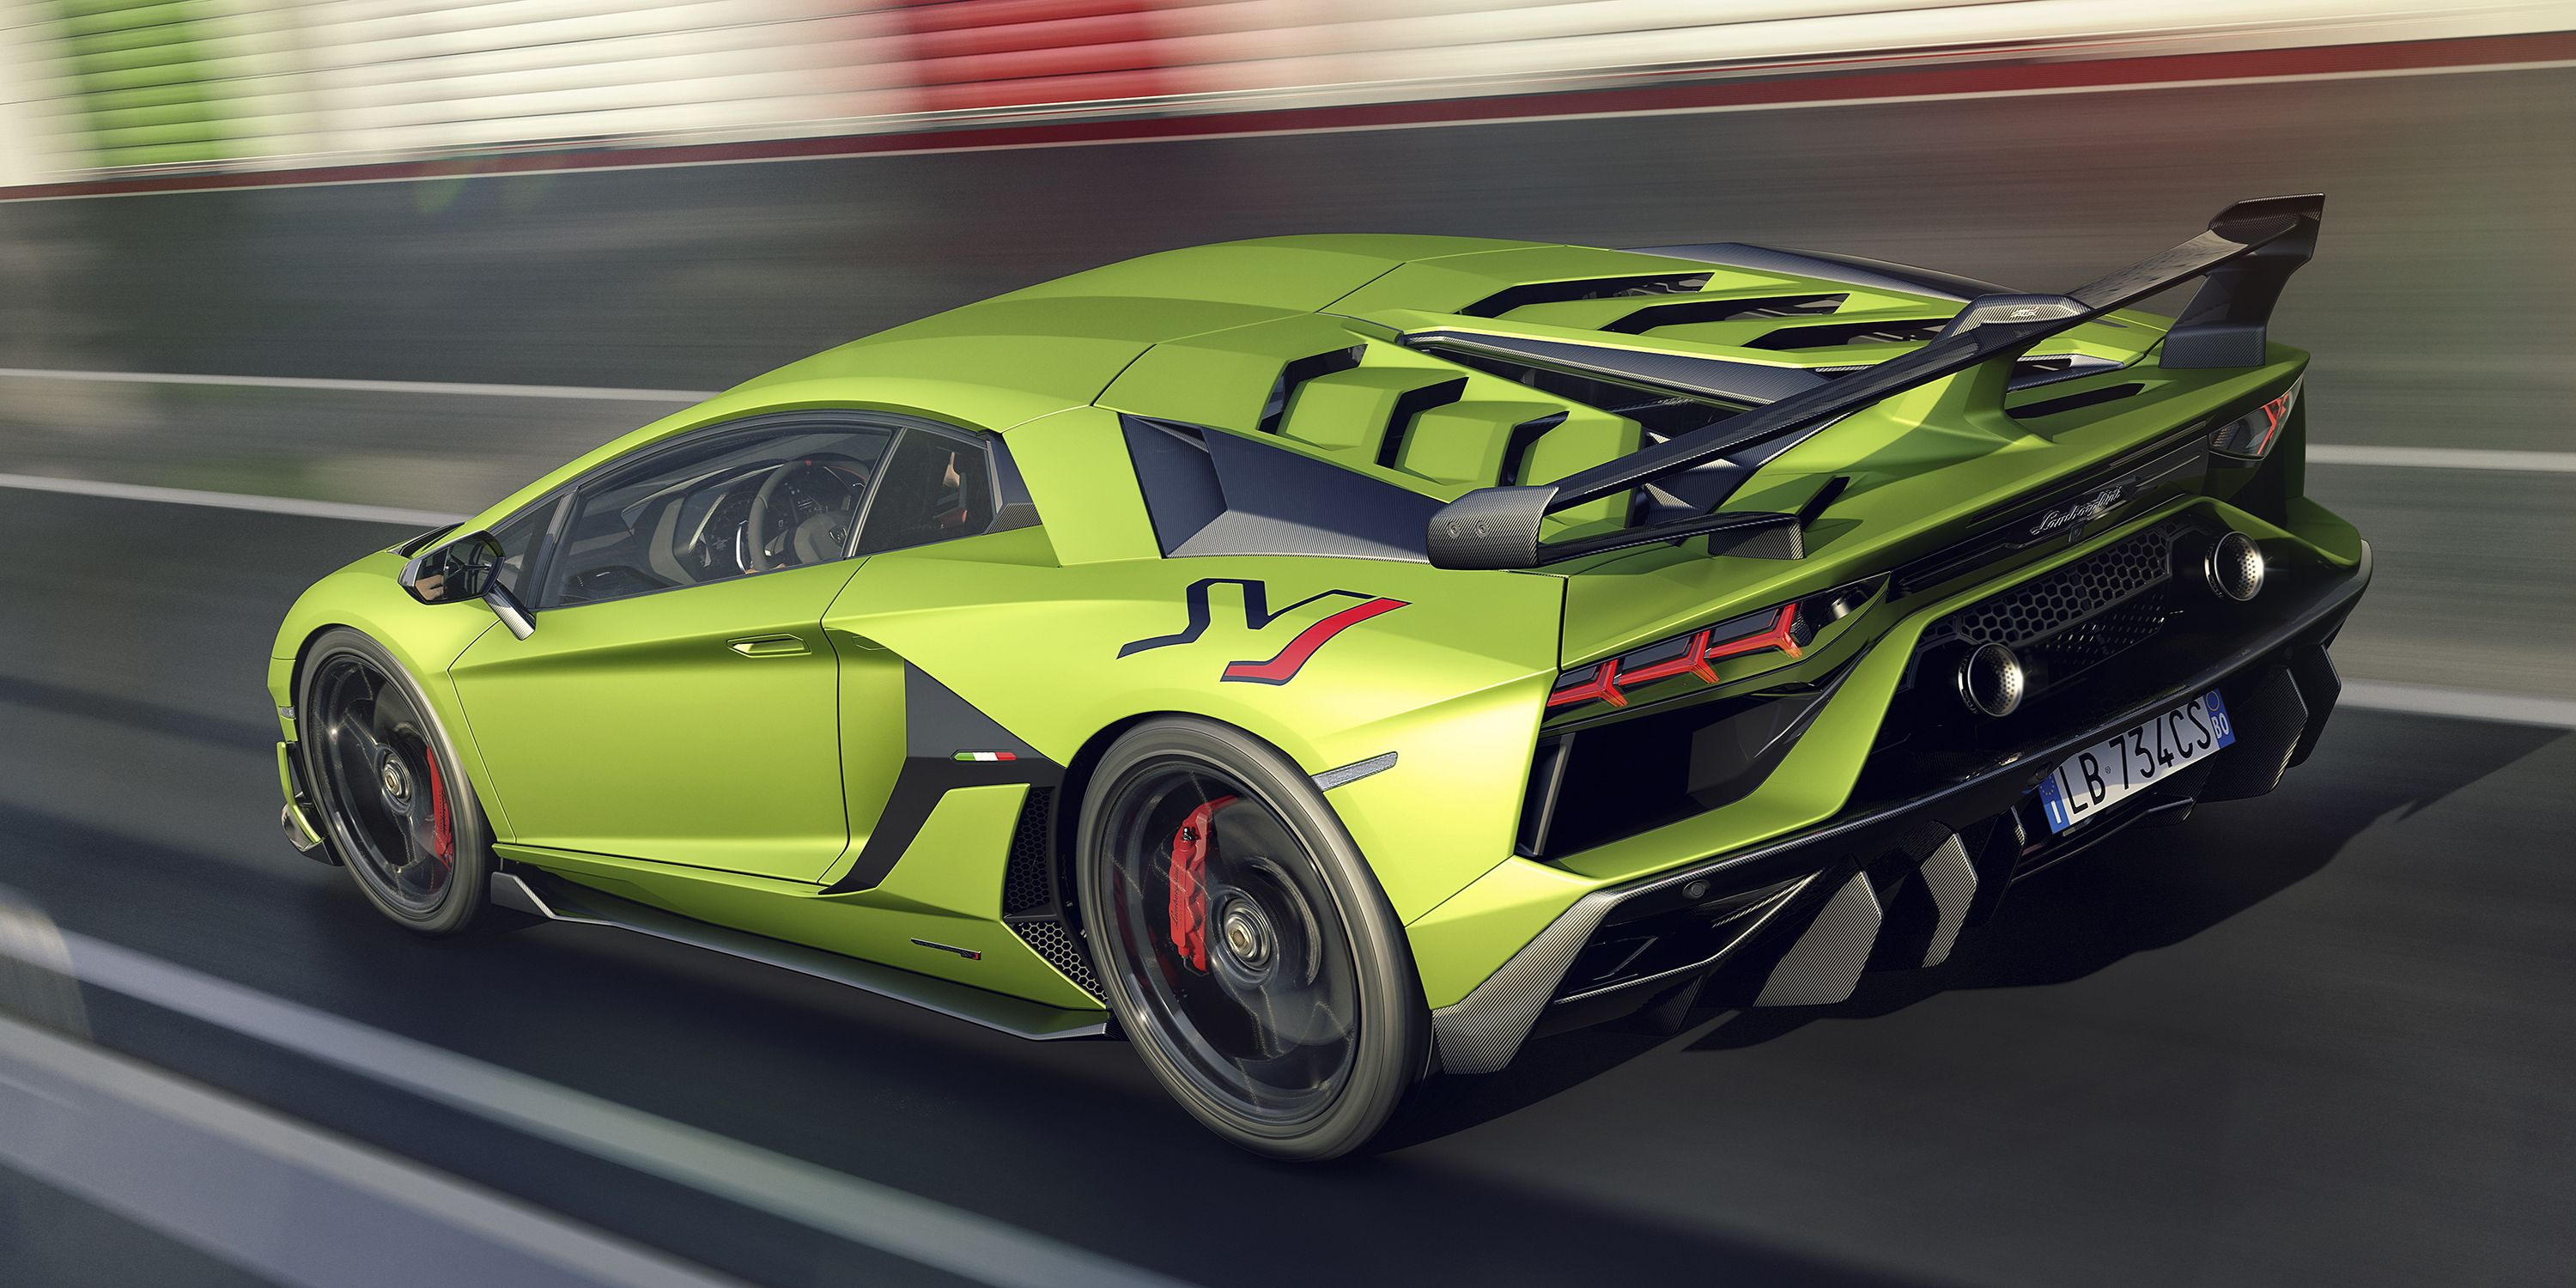 20 Of The Coolest Production Car Spoilers Wildest Car Wings Ever